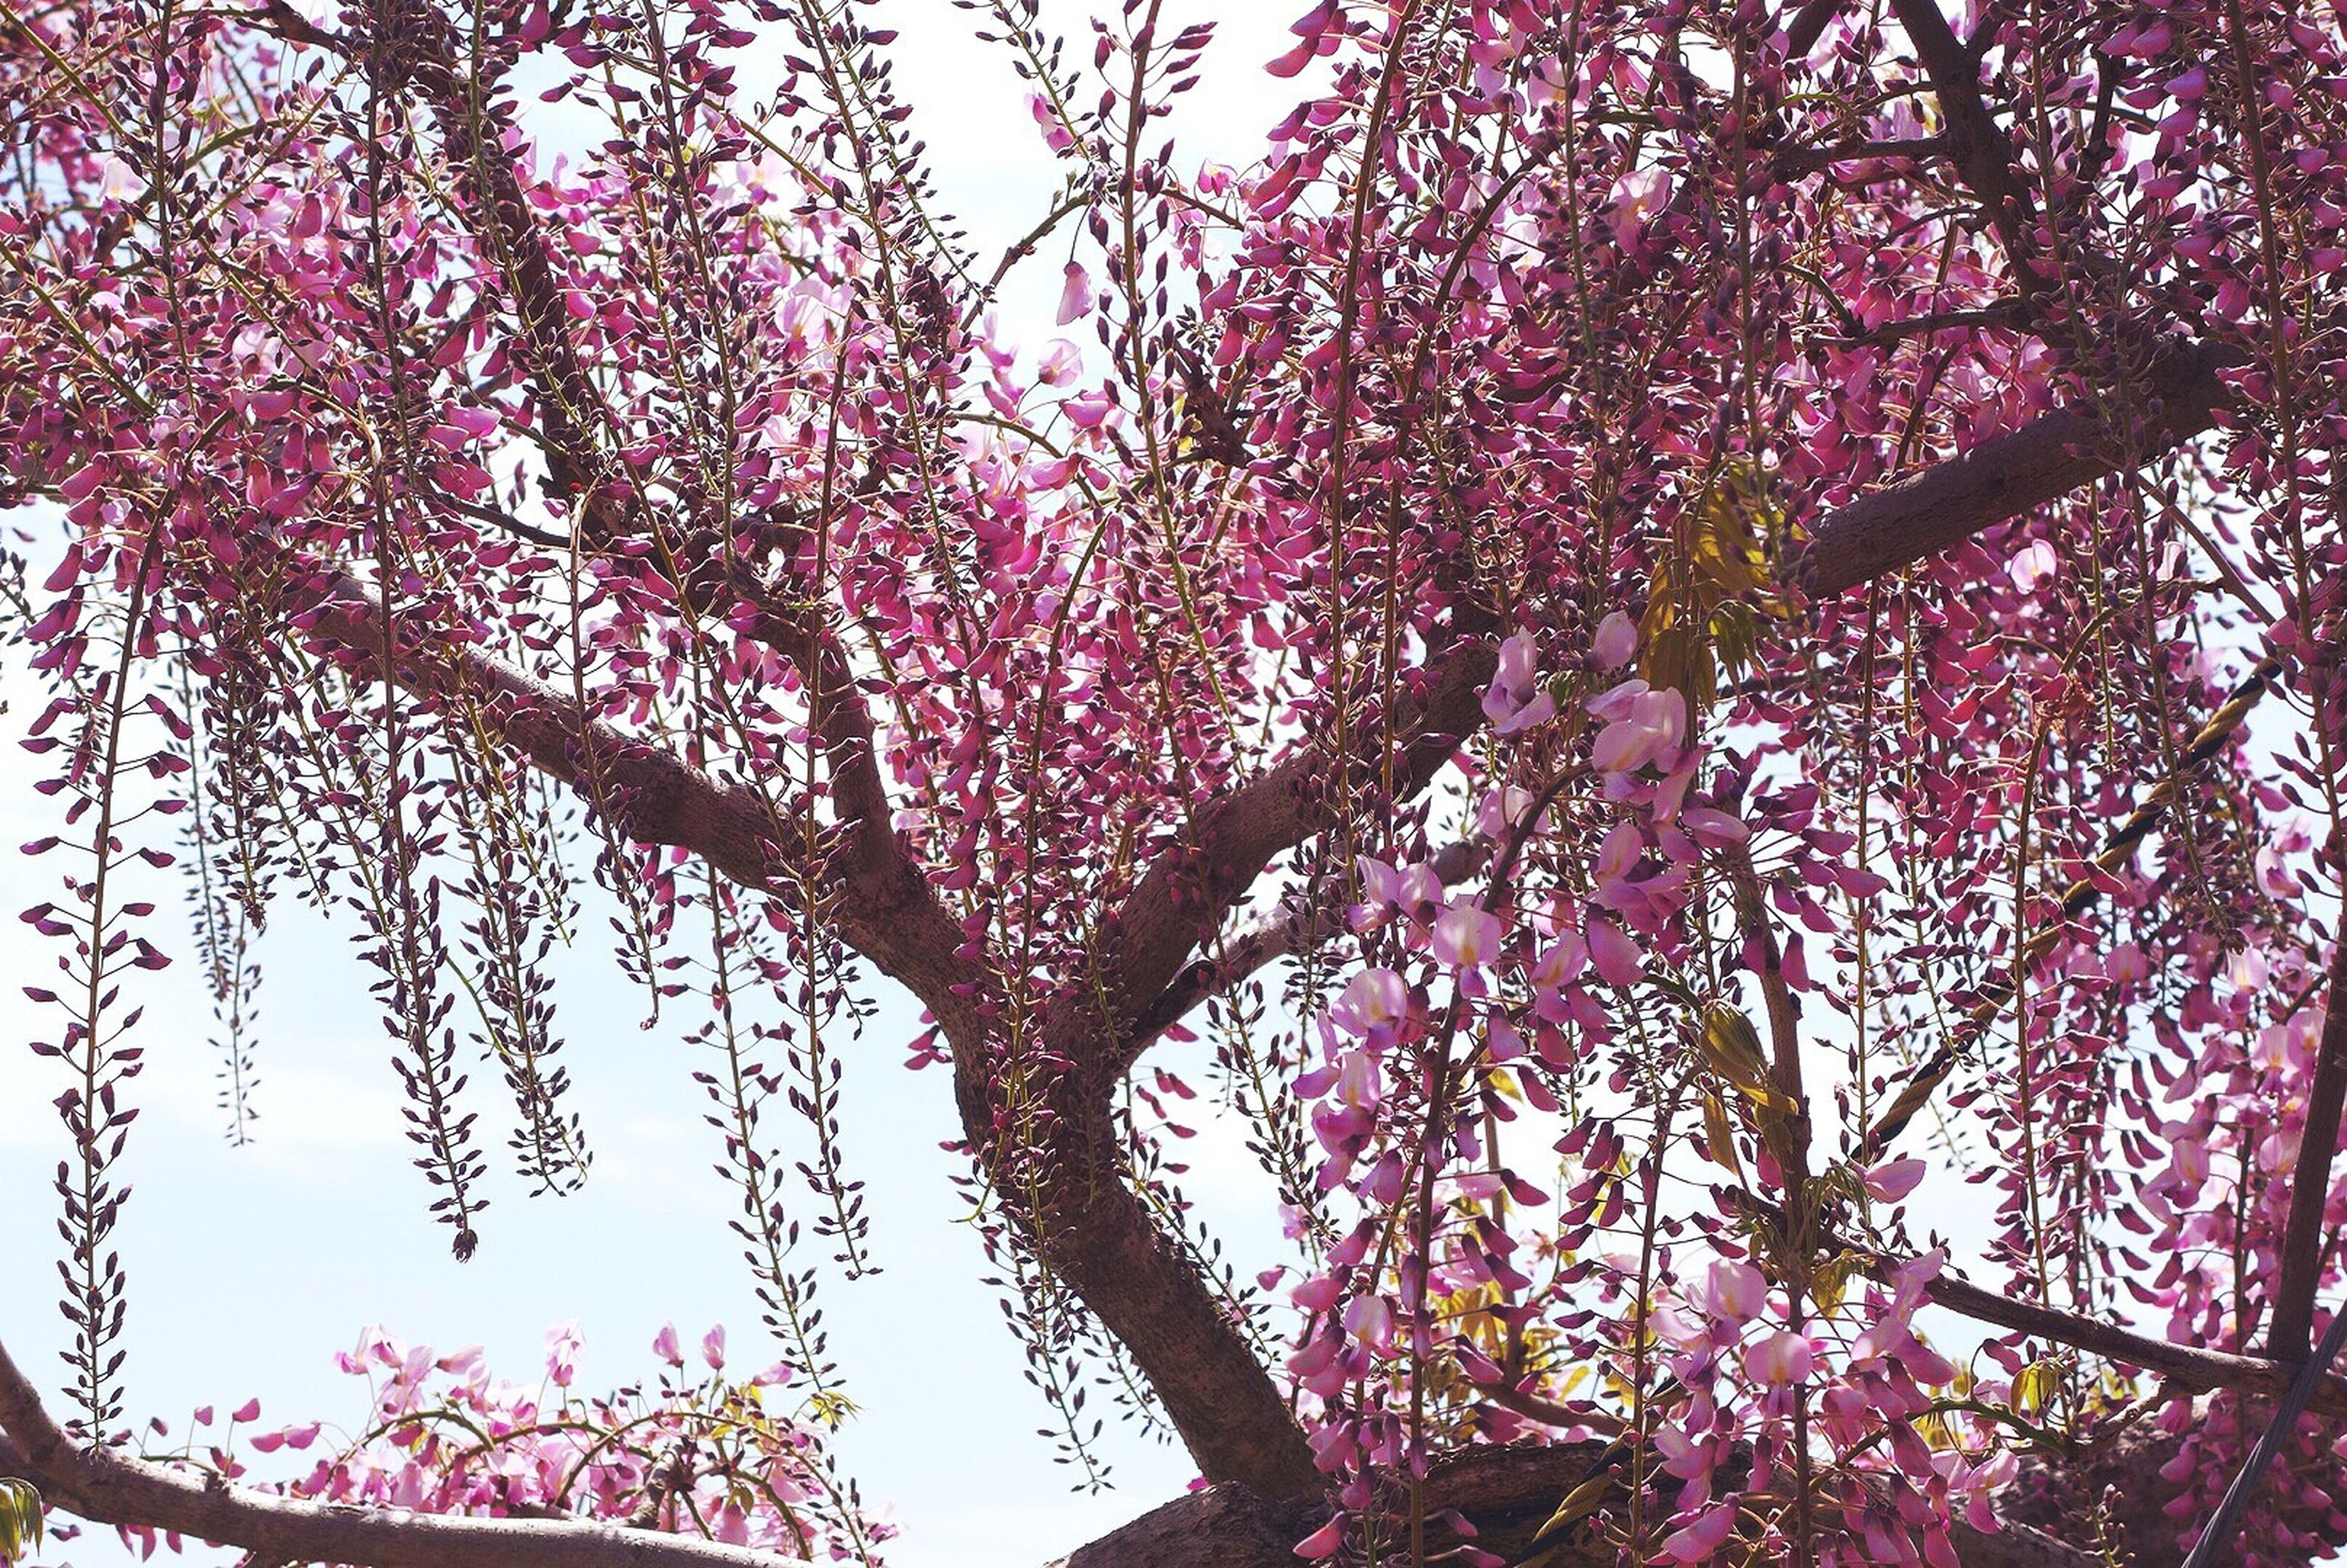 flower, tree, low angle view, branch, growth, pink color, nature, beauty in nature, freshness, fragility, sky, clear sky, blossom, day, outdoors, built structure, blooming, building exterior, in bloom, no people